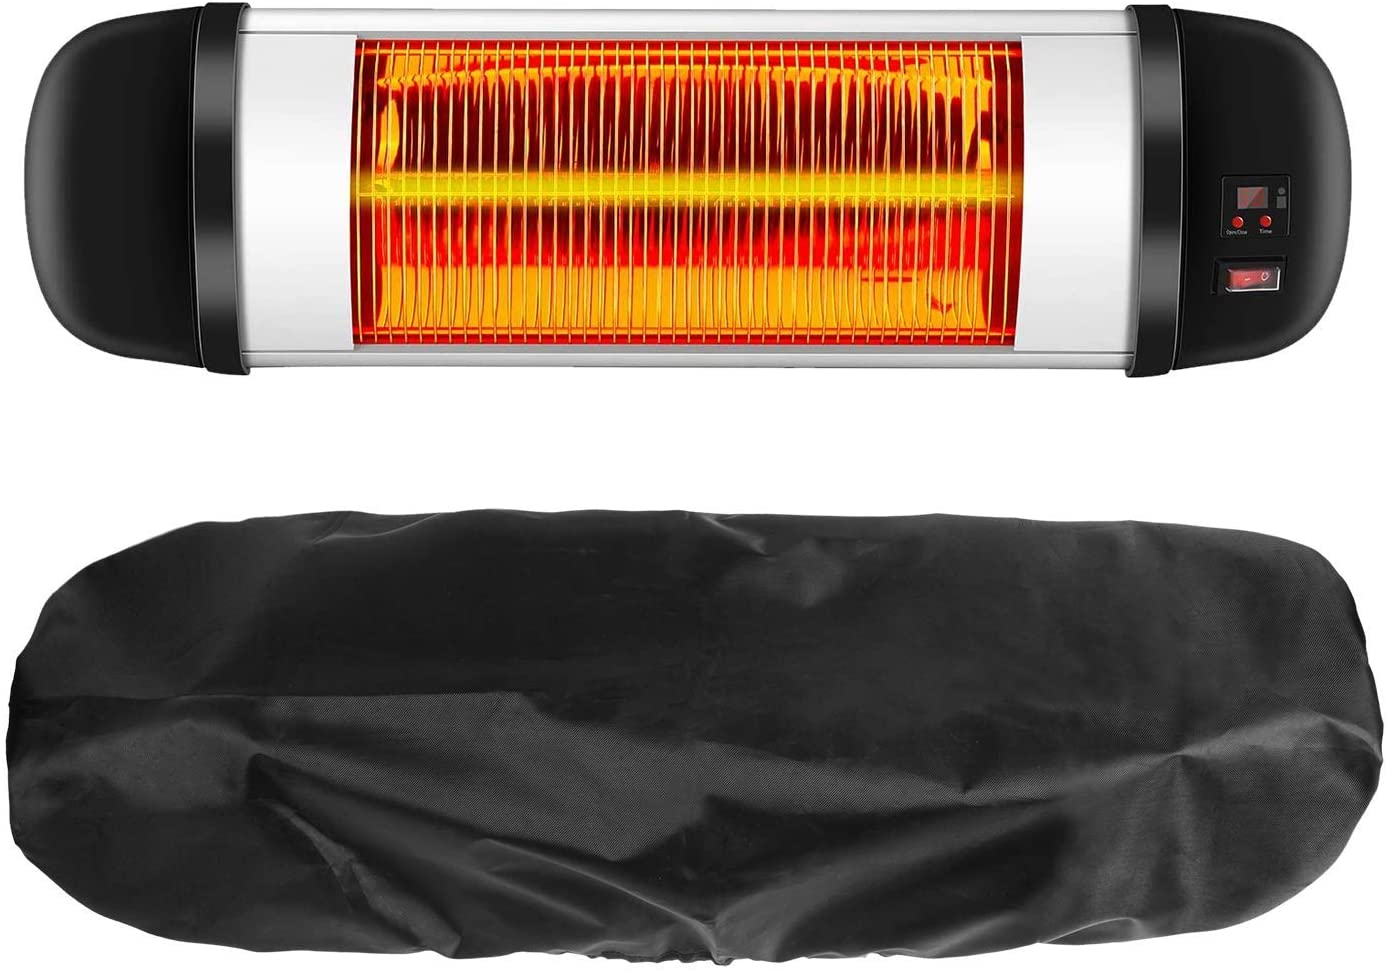 PONWEC PATIO HEATER COVER 400D OXFORD CLOTH MADED ELECTRIC HEATER COVER WATERPROOF AND DUST-PROOF INFRARED HEATER COVERS 24 MONTHS OF USE 30`` H X 9.5 D X 8.7 B IN BLACK